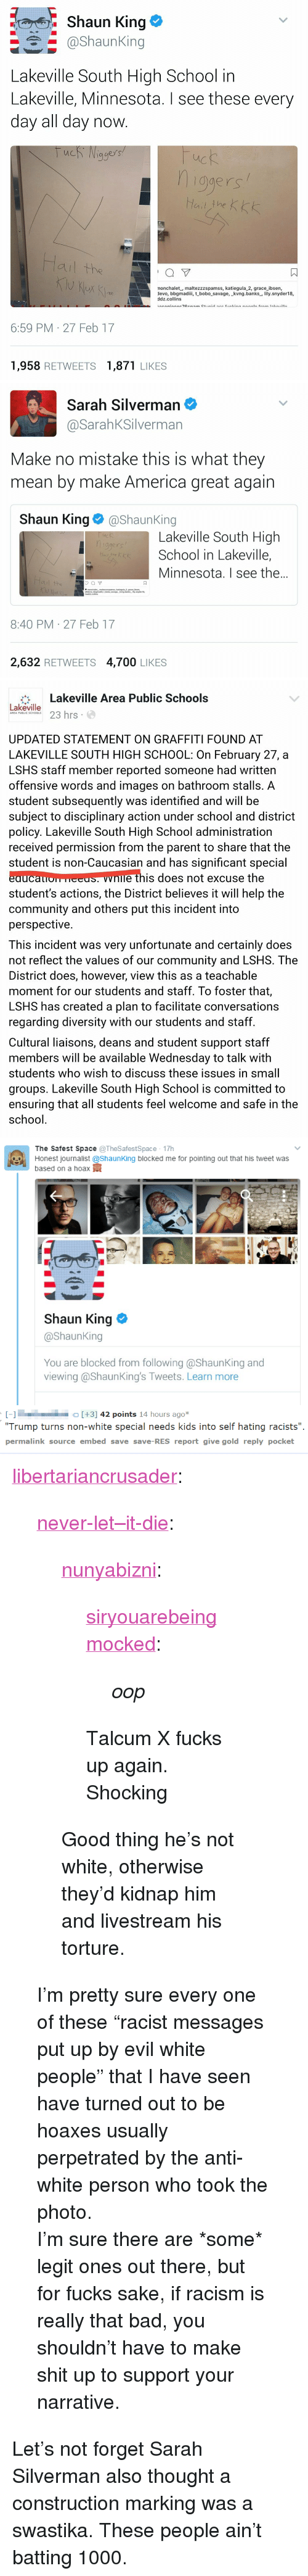 batting: Shaun King e  @shaunking  Lakeville South High School in  Lakeville, Minnesota. I see these every  day all day now  qgers  ис  ogers  ail the  ㄇ  nonchalet, maltezzzspamss, katiegula 2, grace ibsen,  devo, bbgmadiii, t bobo savage, _kvng.banks, lily.snyder18,  ddz.collins  6:59 PM 27 Feb 17  1,958 RETWEETS1,871 LIKES   Sarah Silverman  @SarahKSilverman  Make no mistake this is what they  mean by make America great again  Shaun King@ShaunKing  Lakeville South High  School in Lakeville,  Minnesota. I see the..  hige  Hail the k  aul the  只  8:40 PM 27 Feb 17  2,632 RETWEETS 4,700 LIKES   臺Lakeville Area Public Schools  Lakeville  ake 3 hrs  AREA PUBLIC SCHOOLS  UPDATED STATEMENT ON GRAFFITI FOUND AT  LAKEVILLE SOUTH HIGH SCHOOL: On February 27, a  LSHS staff member reported someone had written  offensive words and images on bathroom stalls. A  student subsequently was identified and will be  subject to disciplinary action under school and district  policy. Lakeville South High School administration  received permission from the parent to share that the  student is non-Caucasian and has significant special  eaucauom HEES nle this does not excuse the  student's actions, the District believes it will help the  community and others put this incident into  perspective  This incident was very unfortunate and certainly does  not reflect the values of our community and LSHS. The  District does, however, view this as a teachable  moment for our students and staff. To foster that,  LSHS has created a plan to facilitate conversations  regarding diversity with our students and staff  Cultural liaisons, deans and student support staff  members will be available Wednesday to talk with  students who wish to discuss these issues in small  groups. Lakeville South High School is committed to  ensuring that all students feel welcome and safe in the  school   The Safest Space TheSafestSpace 17h  Honest journalist @ShaunKing blocked me for pointing out that his tweet was  based o